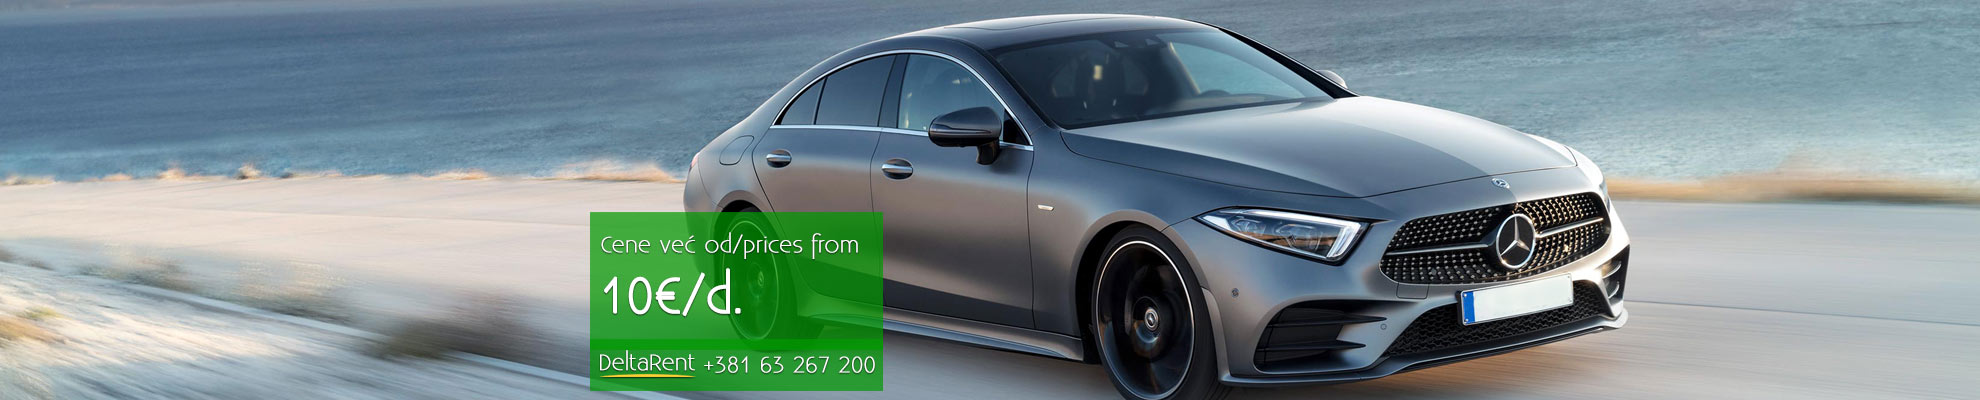 Rent a car, luxury vehicles, car rental: DeltaRent, Belgrade